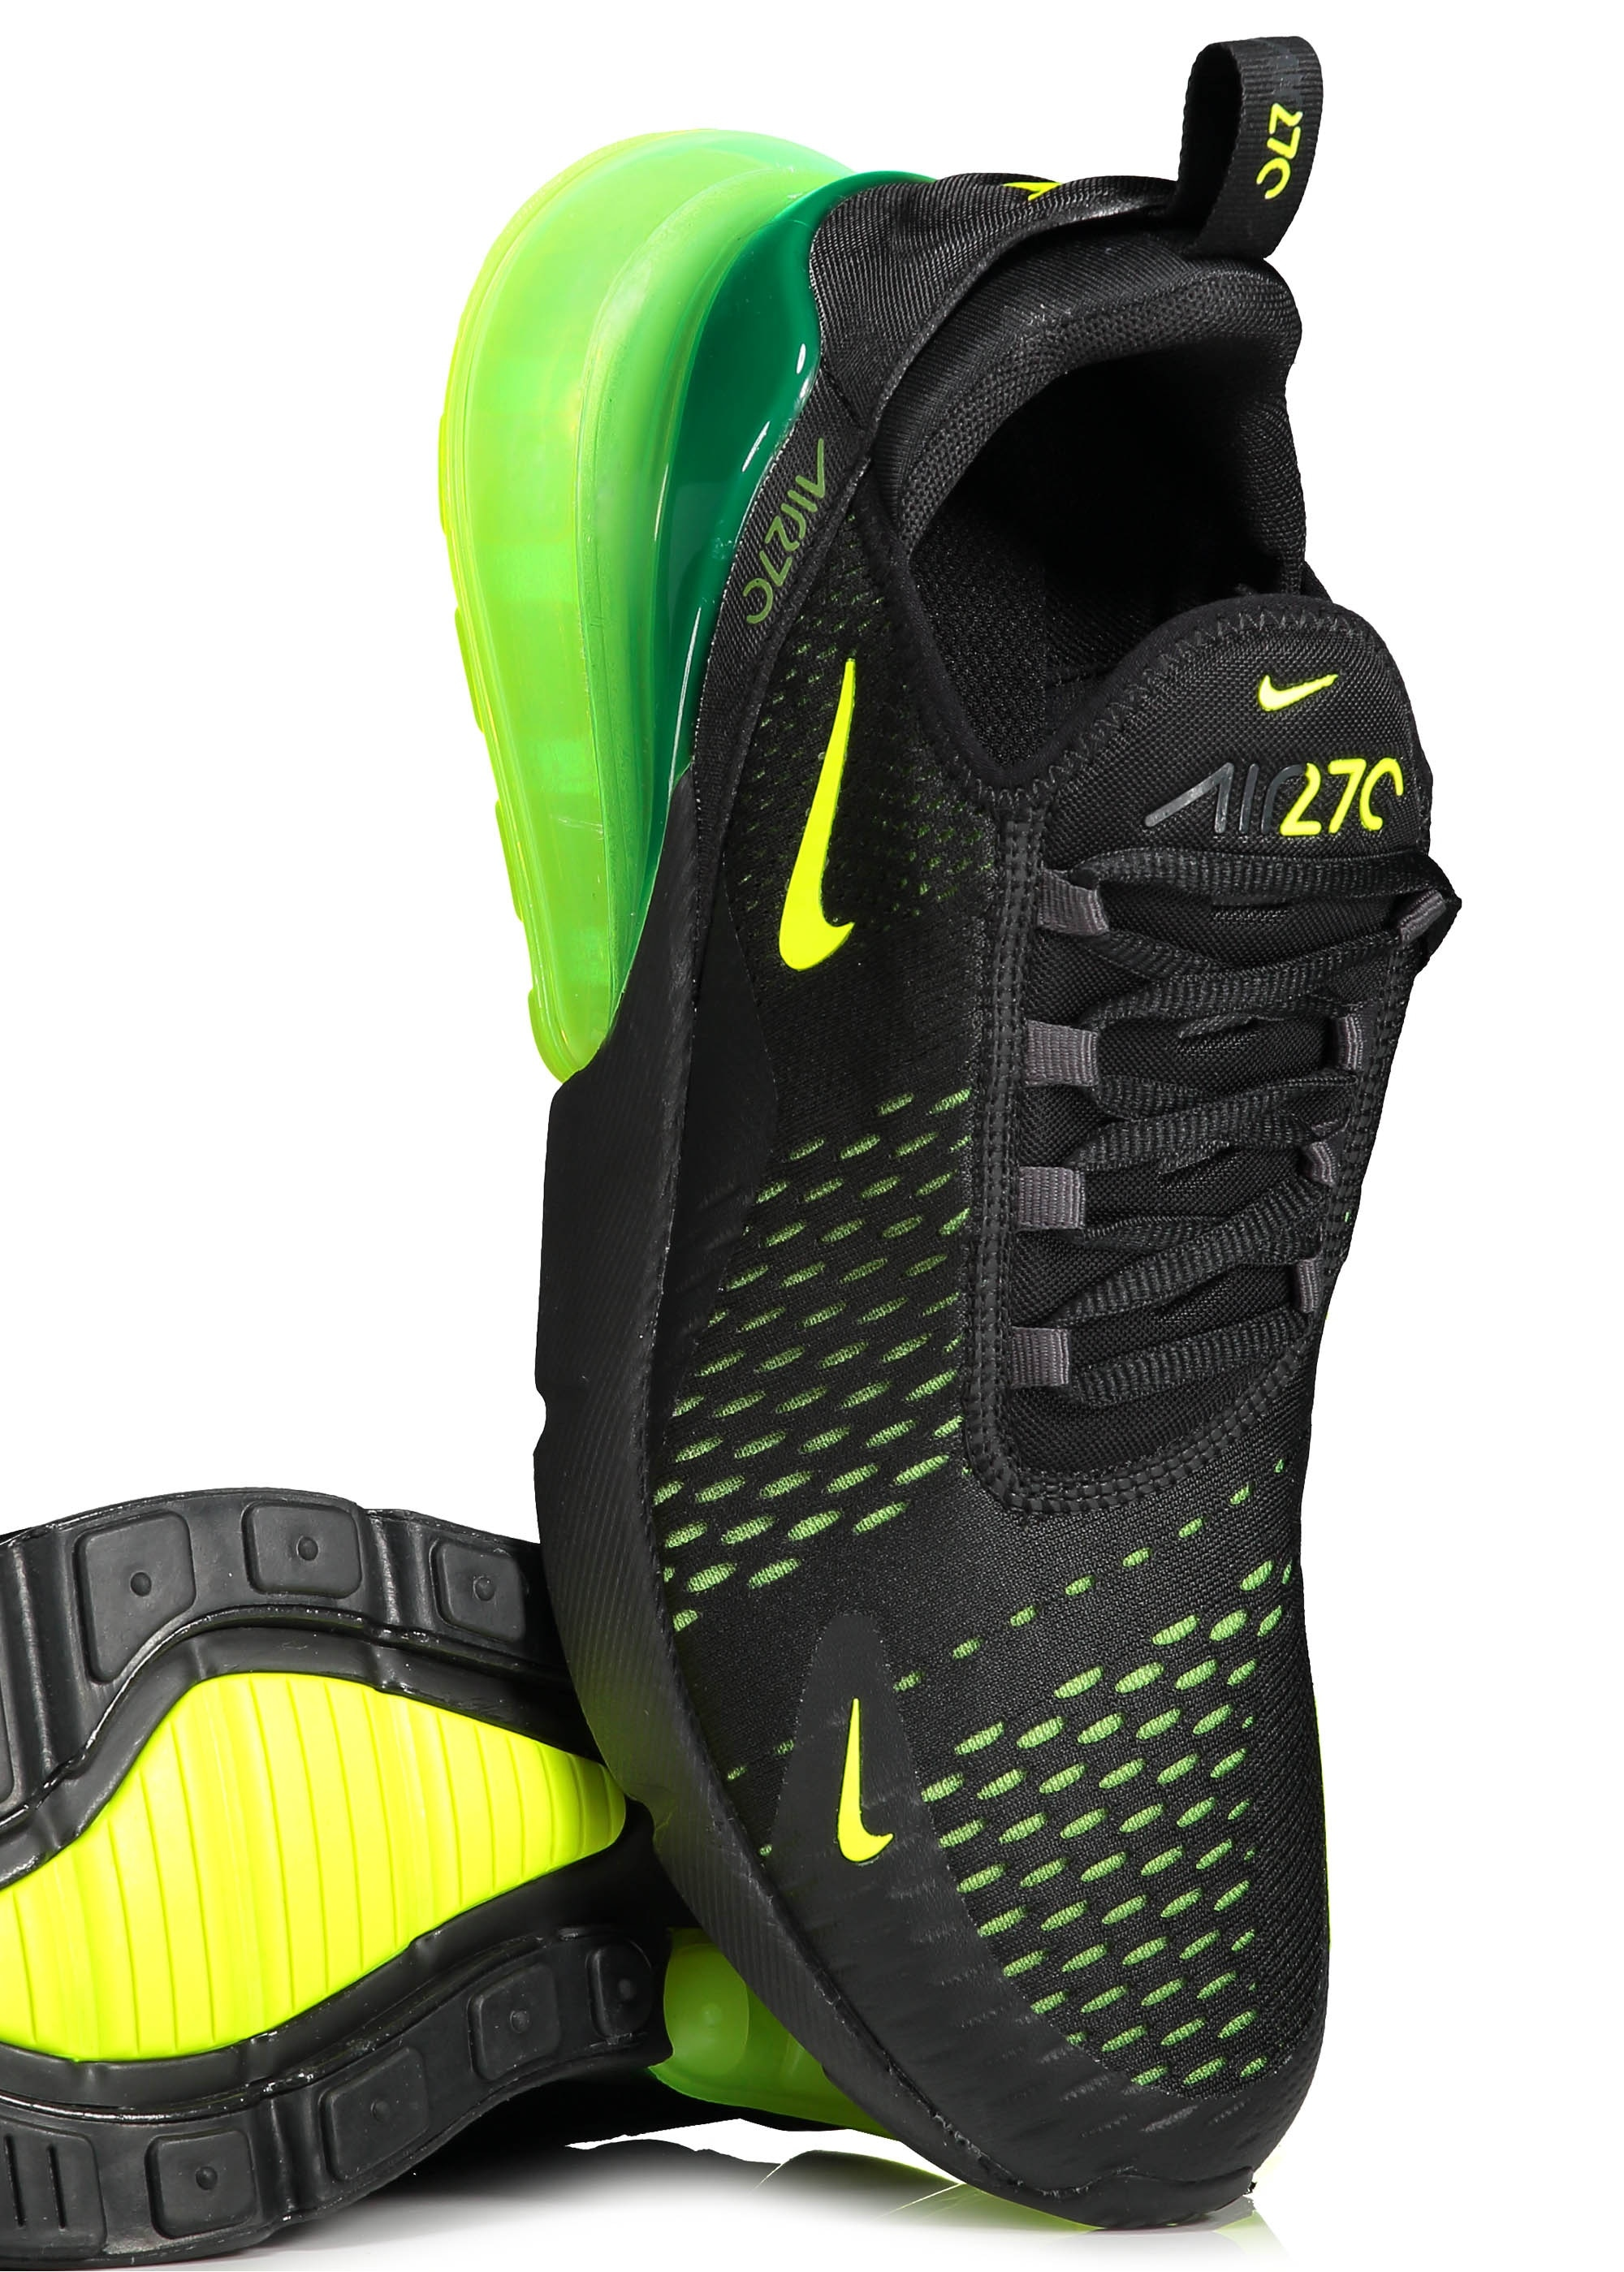 679197d803 Nike Footwear Air Max 270 - Black / Volt - Trainers from Triads UK